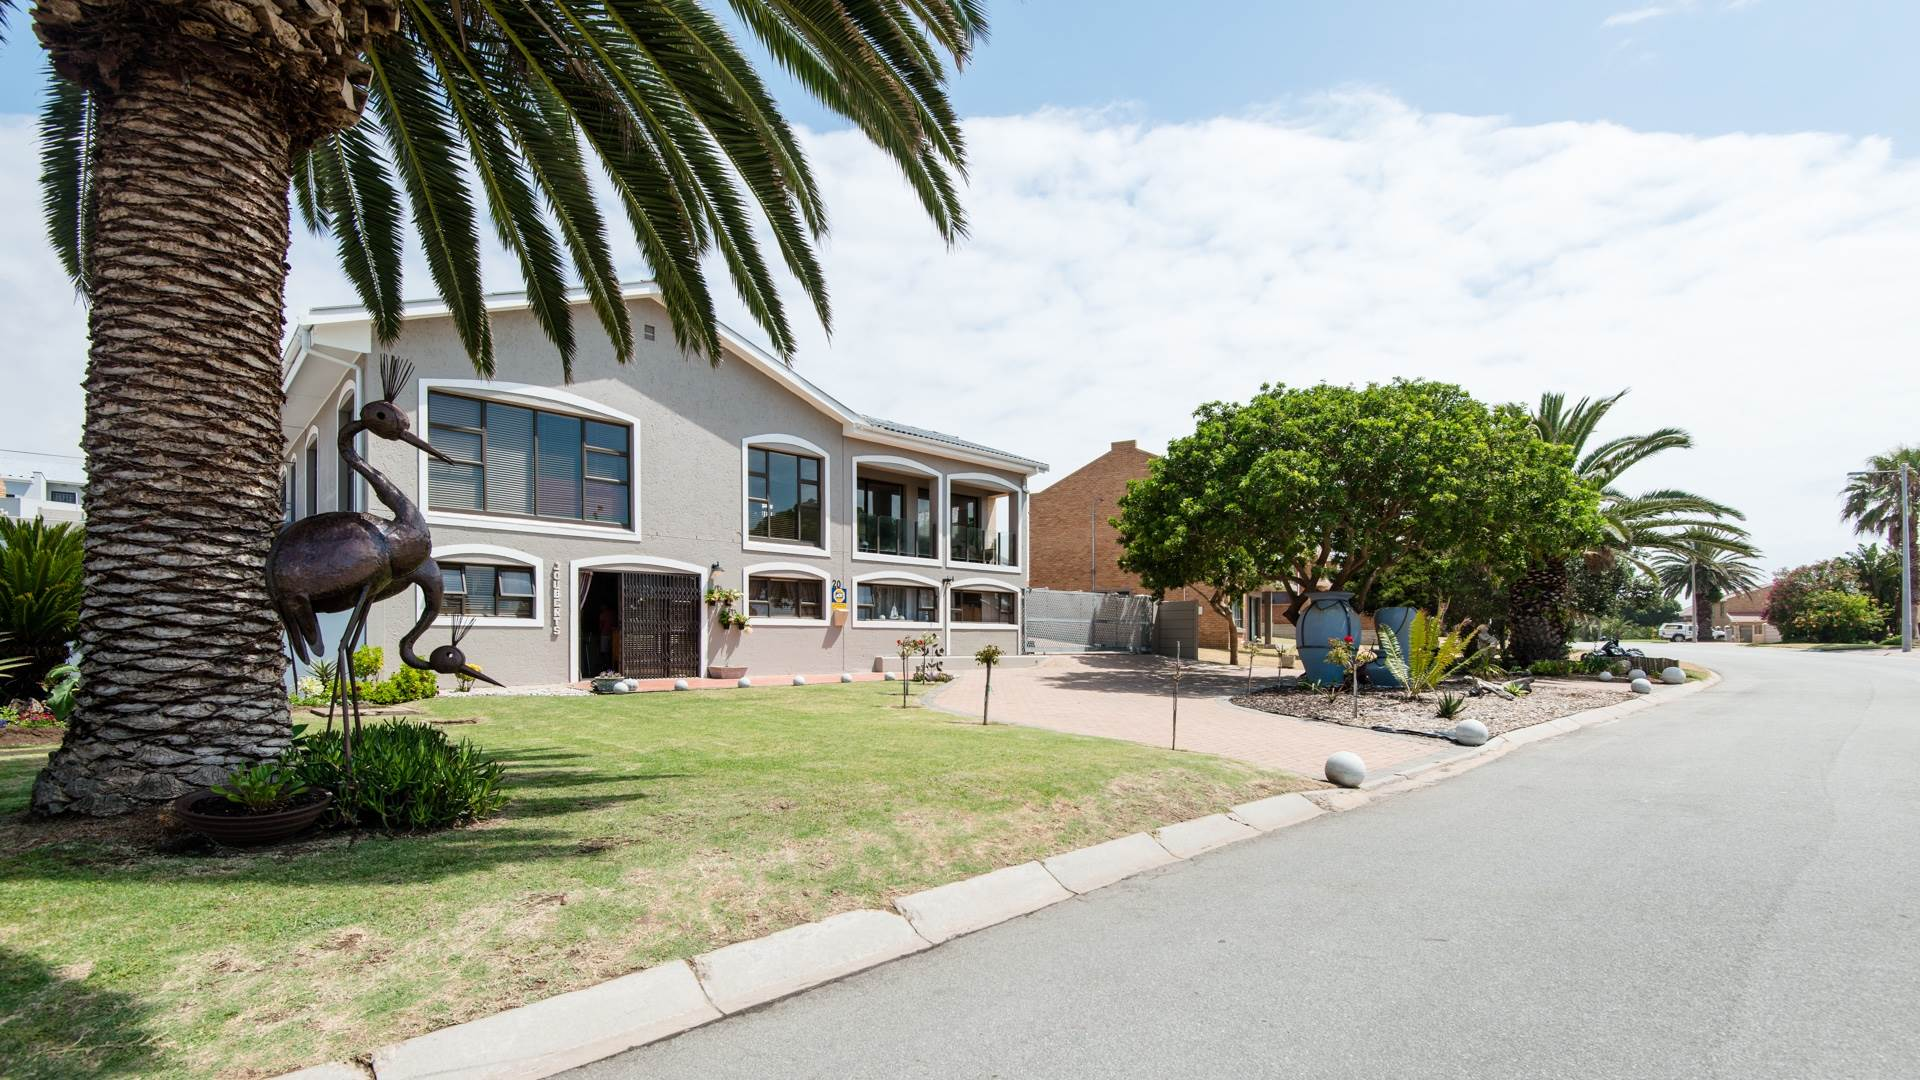 6 BedroomHouse For Sale In Bayview